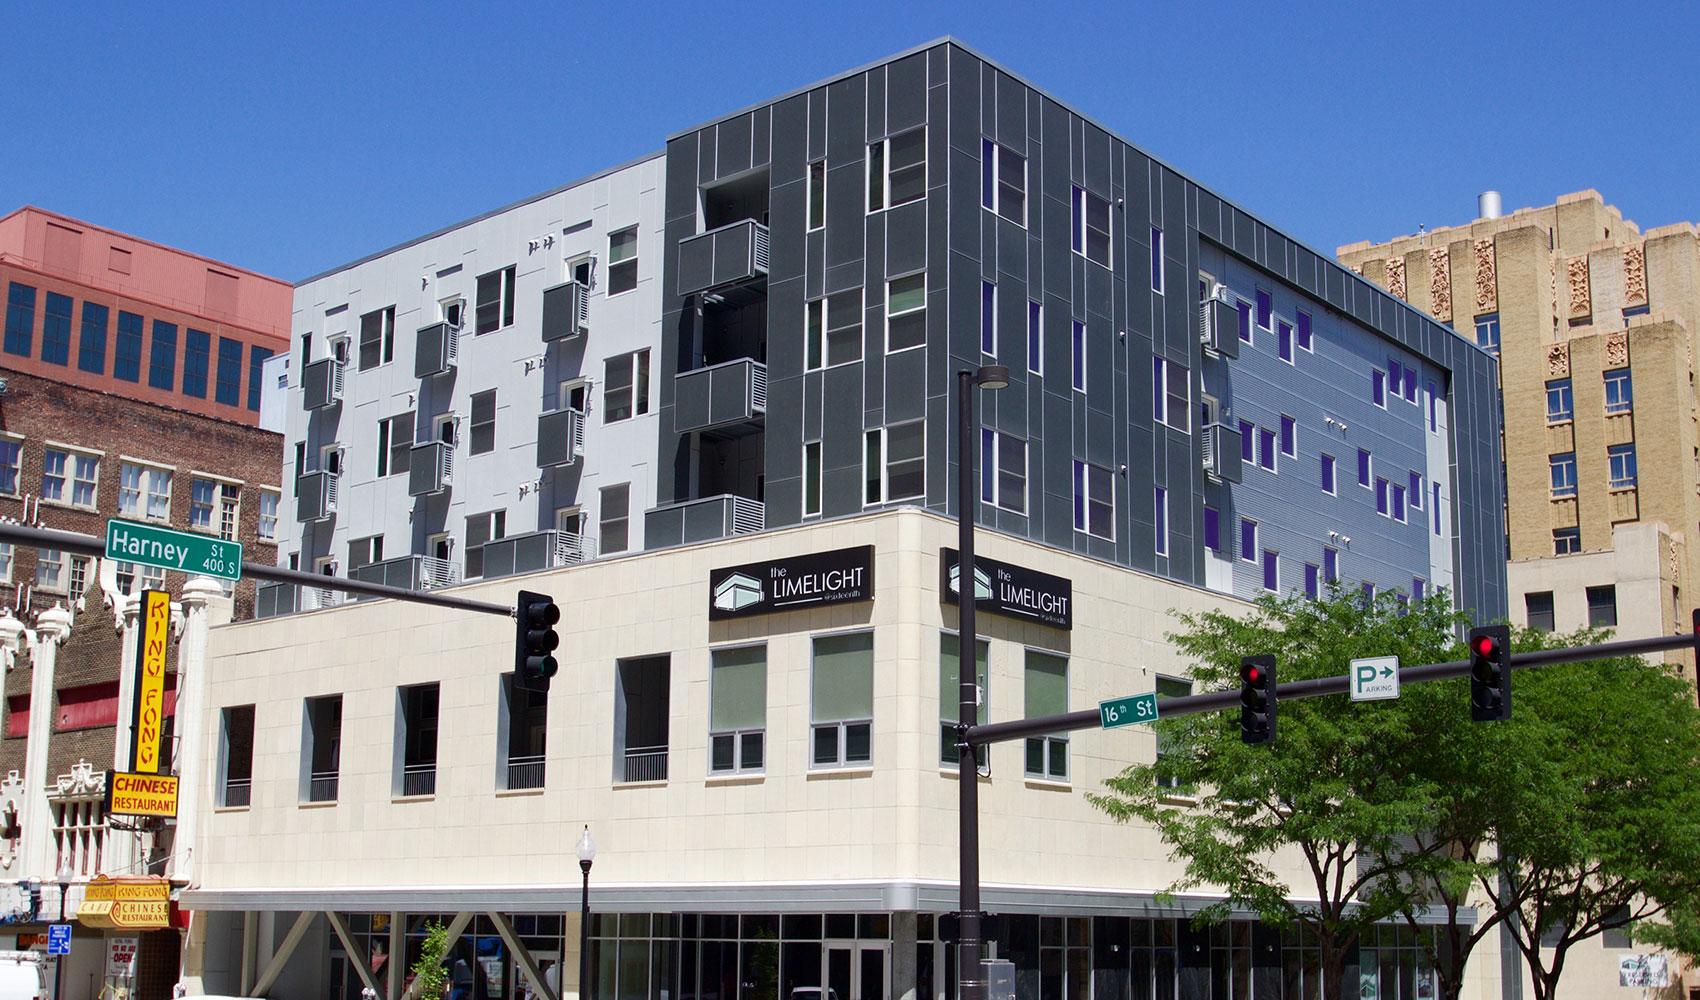 Apartments In Omaha Ne Limelight At Sixteenth In Omaha Ne